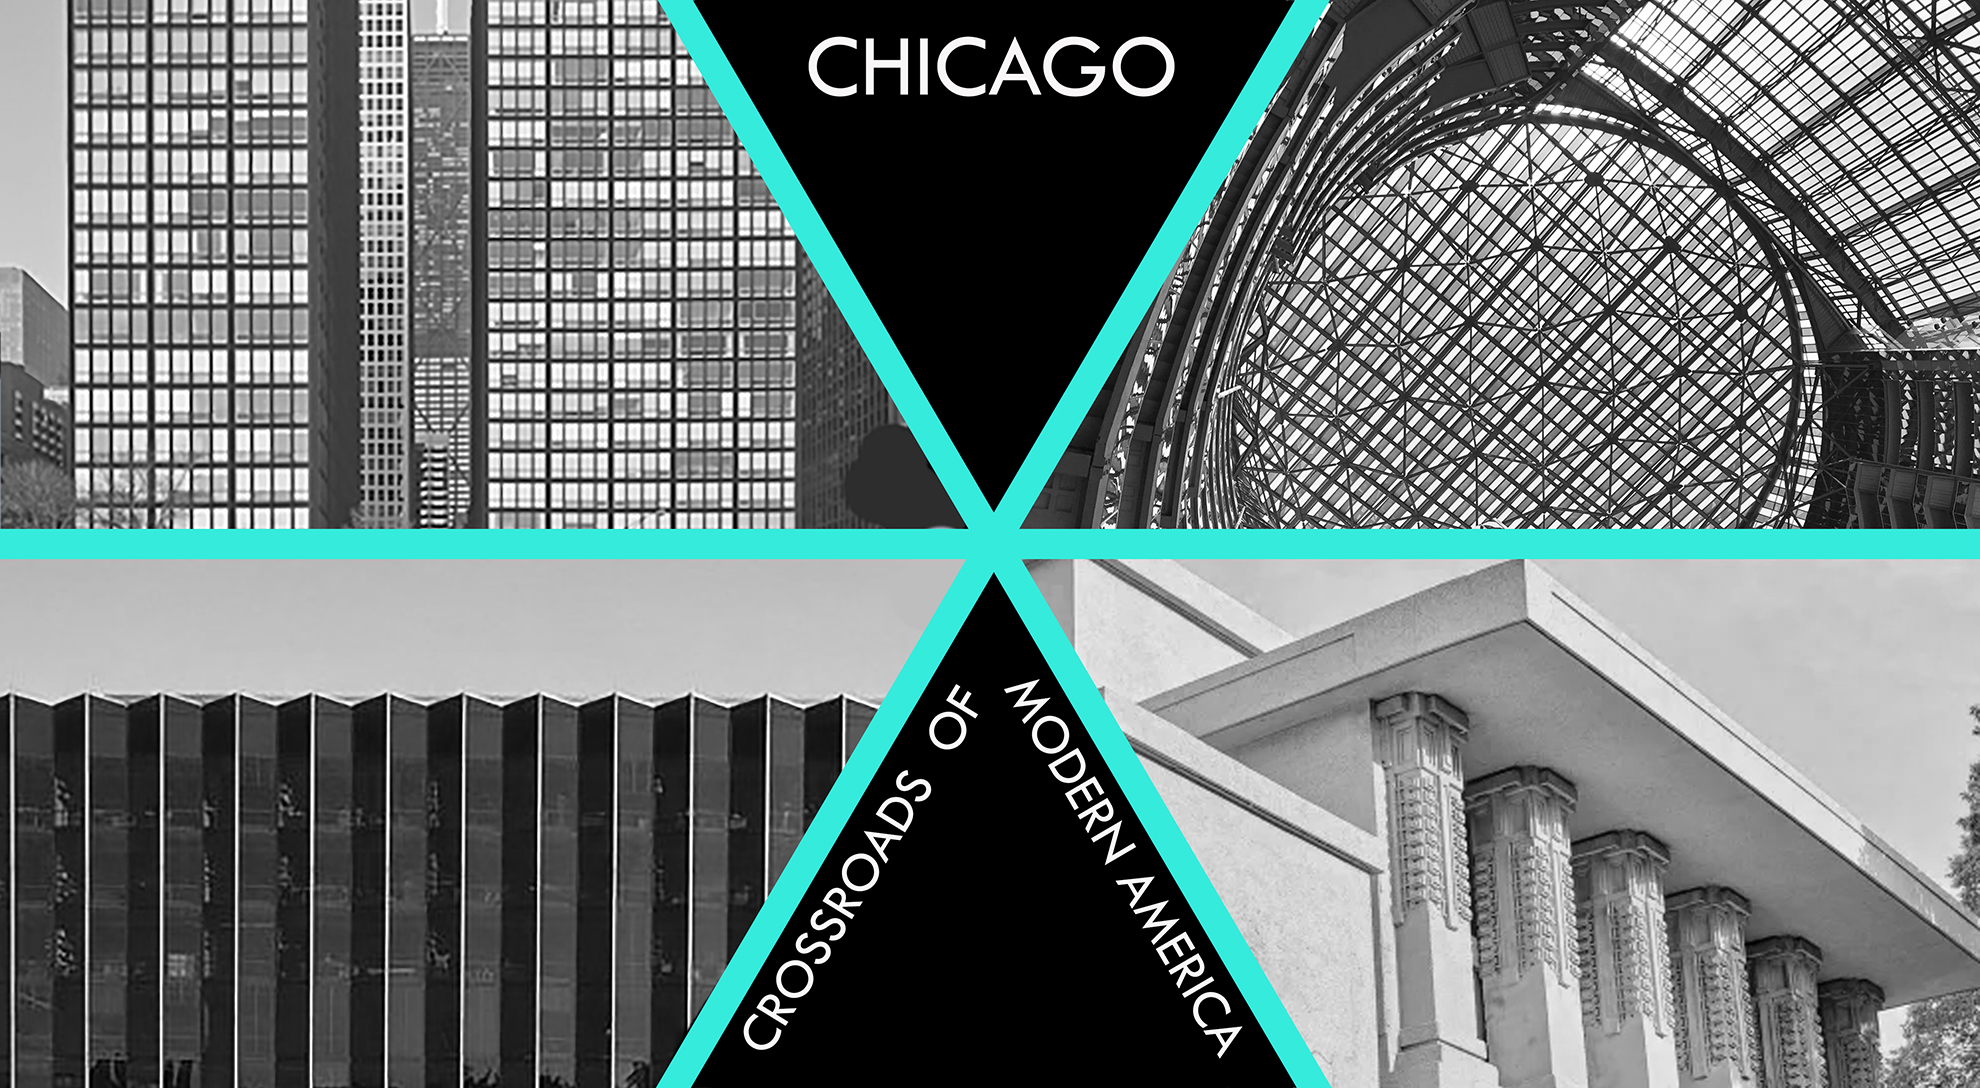 Blinderman sponsors Docomomo US National Symposium in Chicago for the organization's 25th anniversary image